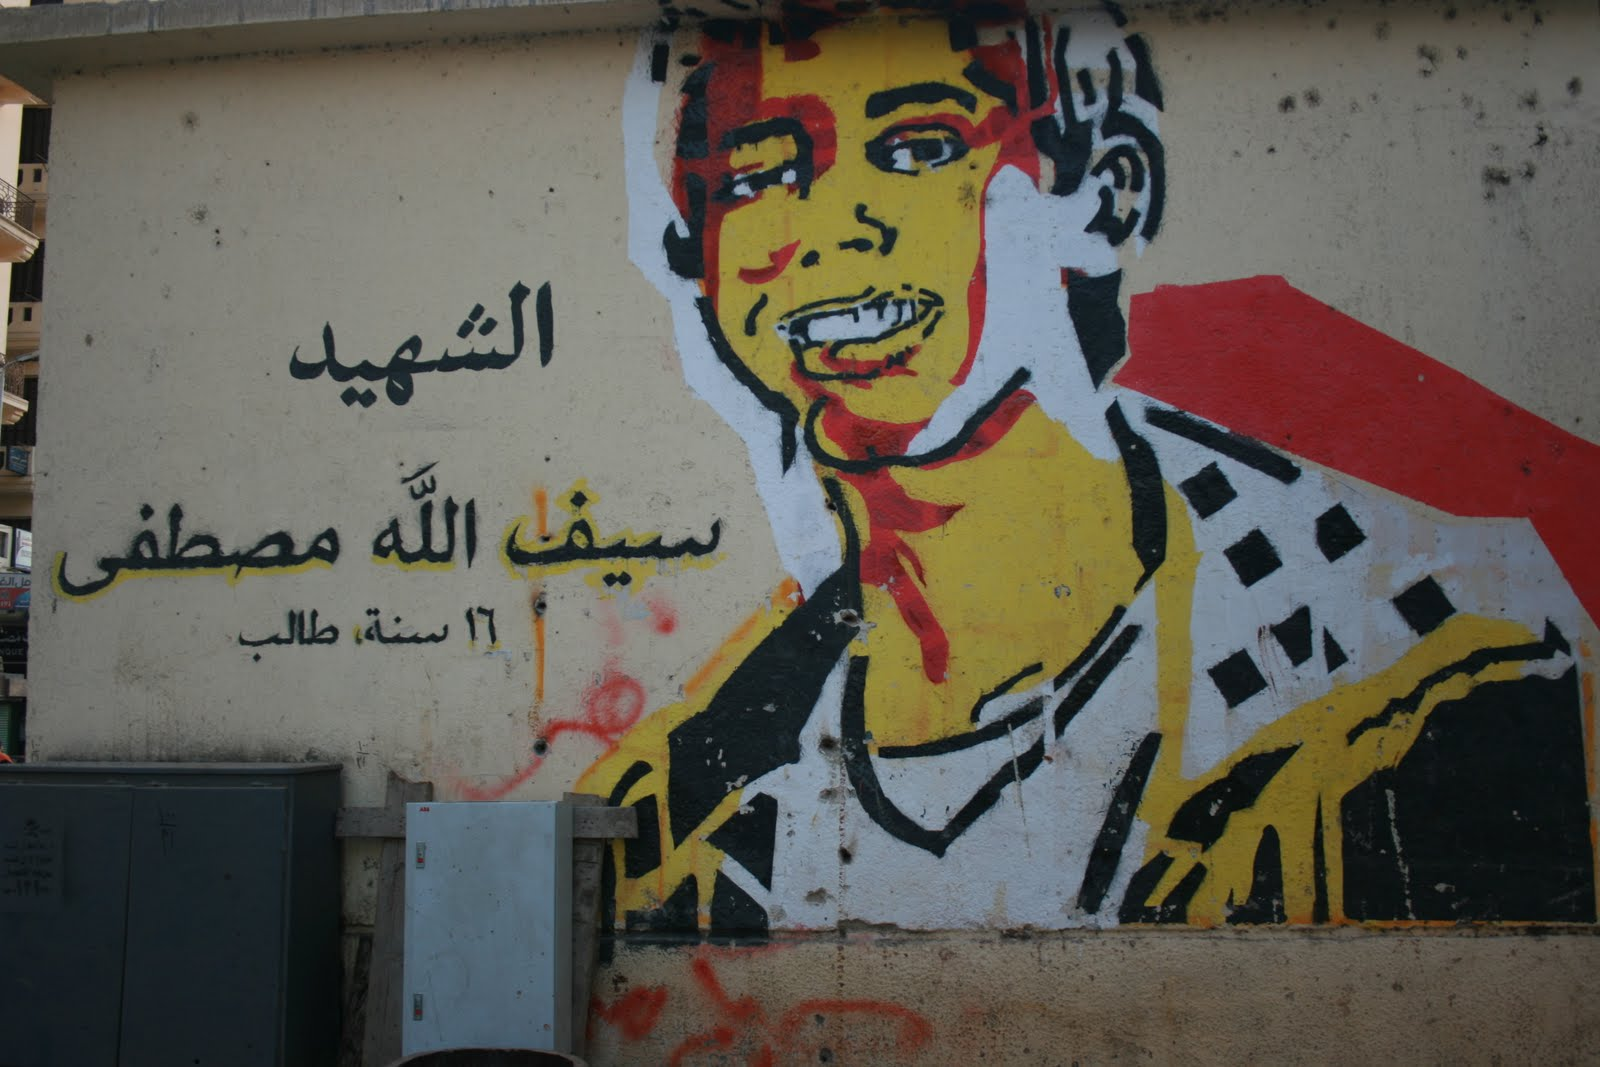 The Series Is The Brainchild Of Artist Ganzeer Aka Mohamed Fahmy In His Words The Goal Of The Project Is To